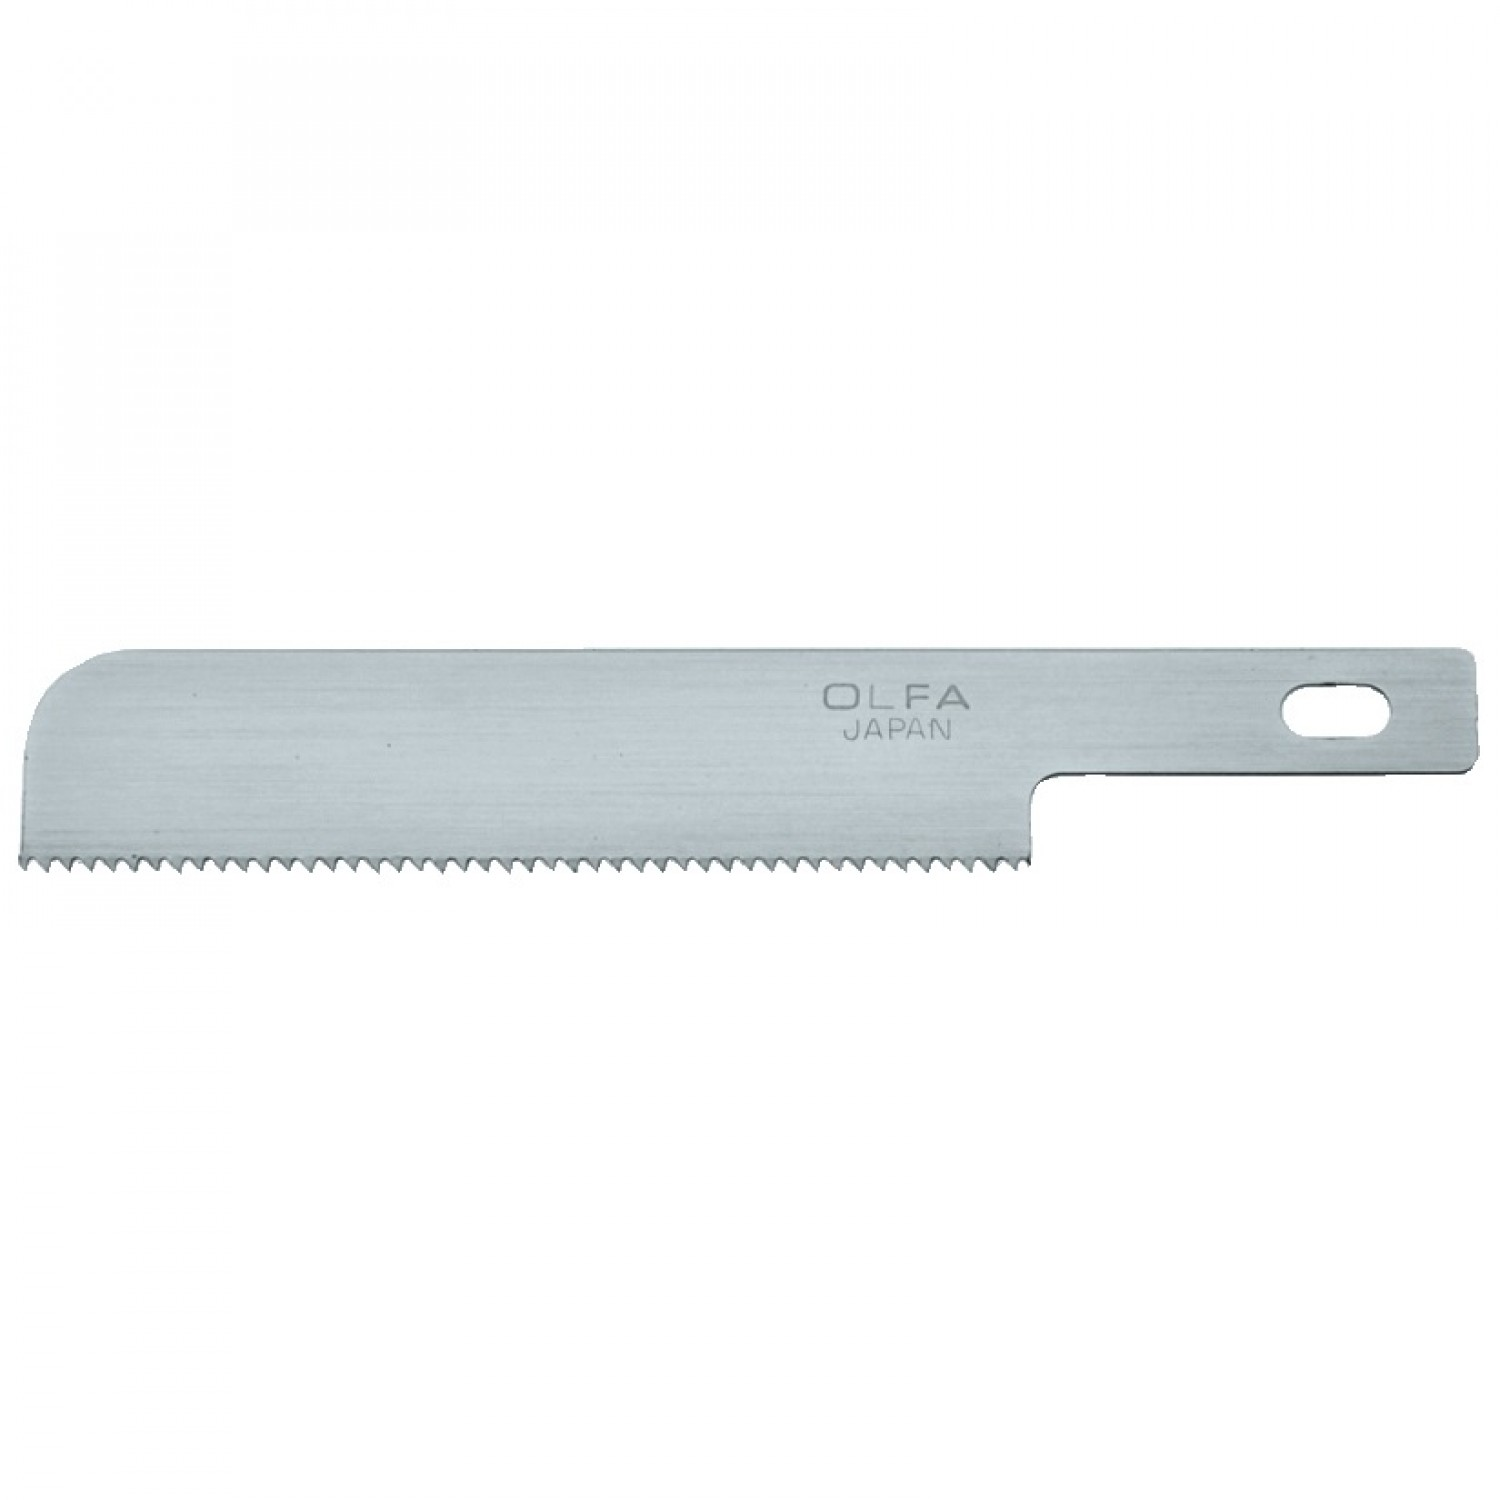 Olfa KB4-WS-3 Craft Saw Blades 3pk